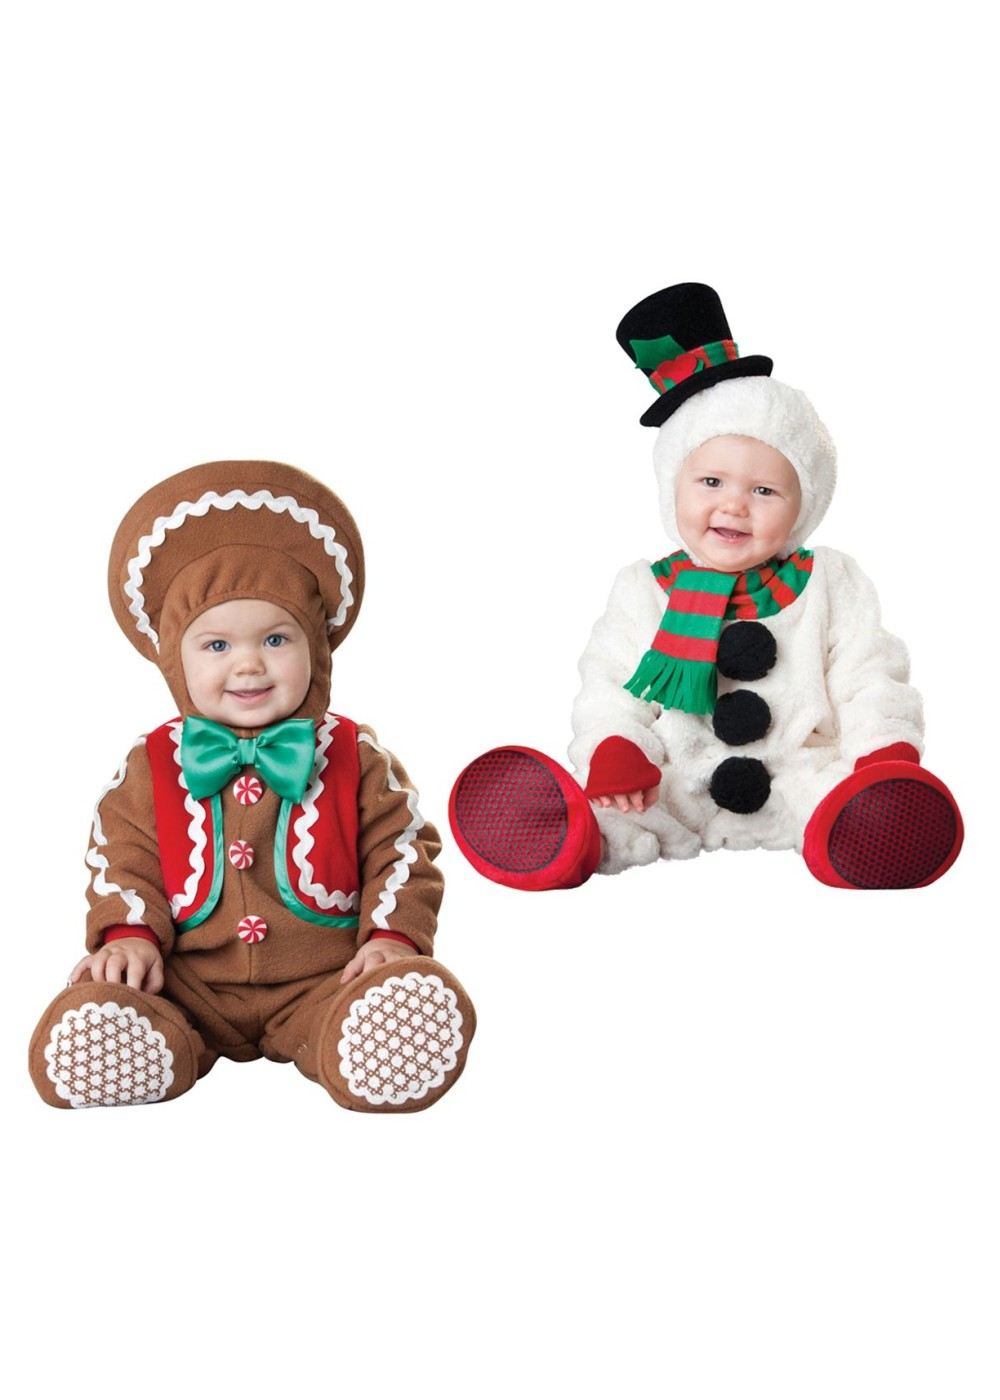 Christmas Gingerbread Man And Snowman Baby Boys Costumes  sc 1 st  Halloween Costumes & Christmas Gingerbread Man and Snowman Baby Boys Costumes - Christmas ...